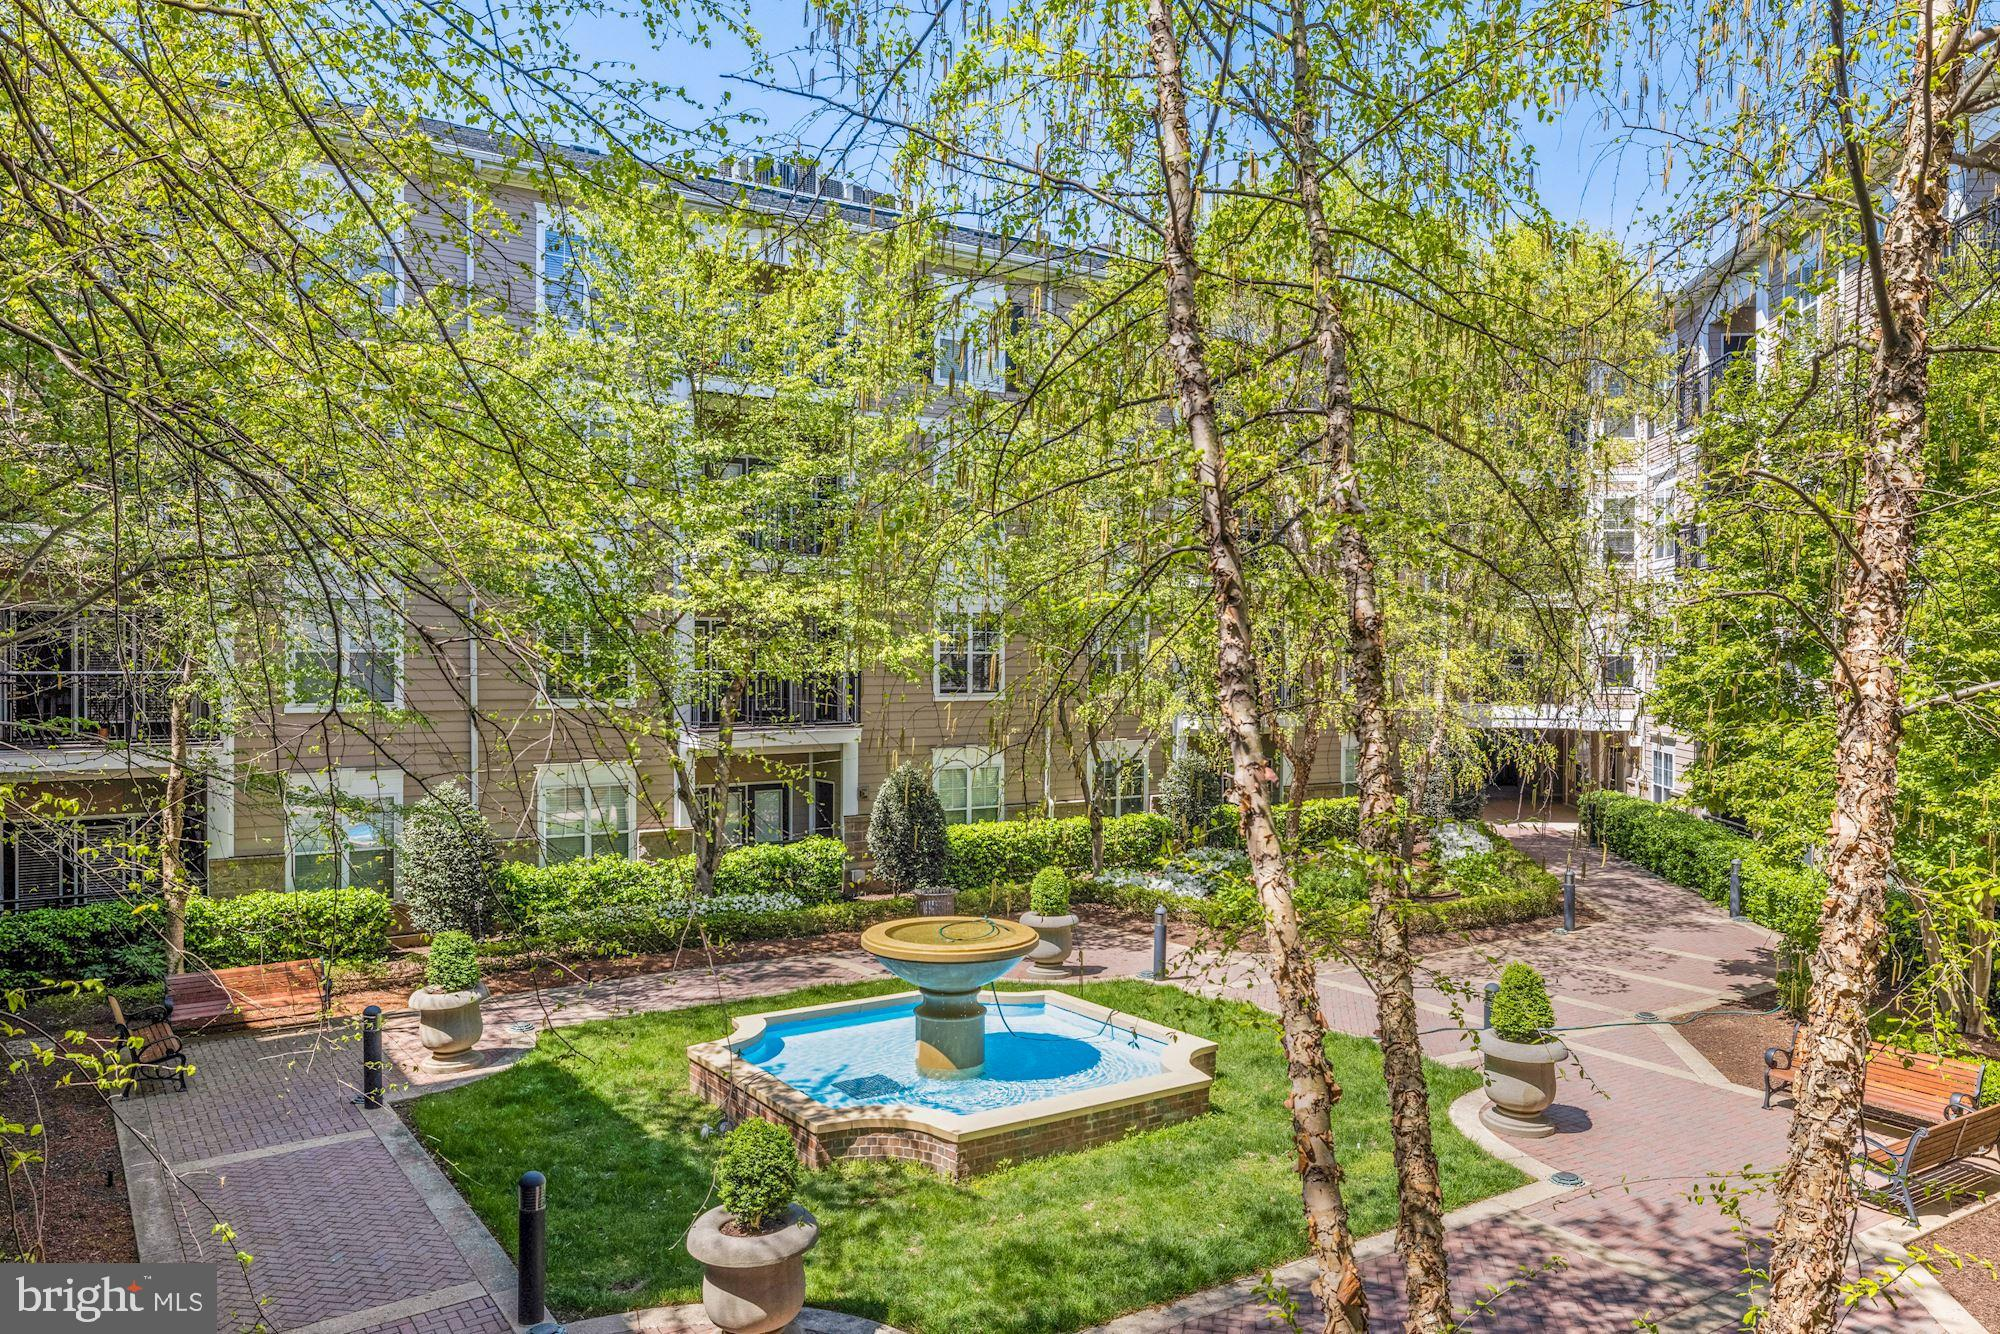 501 HUNGERFORD DRIVE, ROCKVILLE, Maryland 20850, 1 Bedroom Bedrooms, ,1 BathroomBathrooms,Condominium,For Sale,501 HUNGERFORD DRIVE,MDMC754752